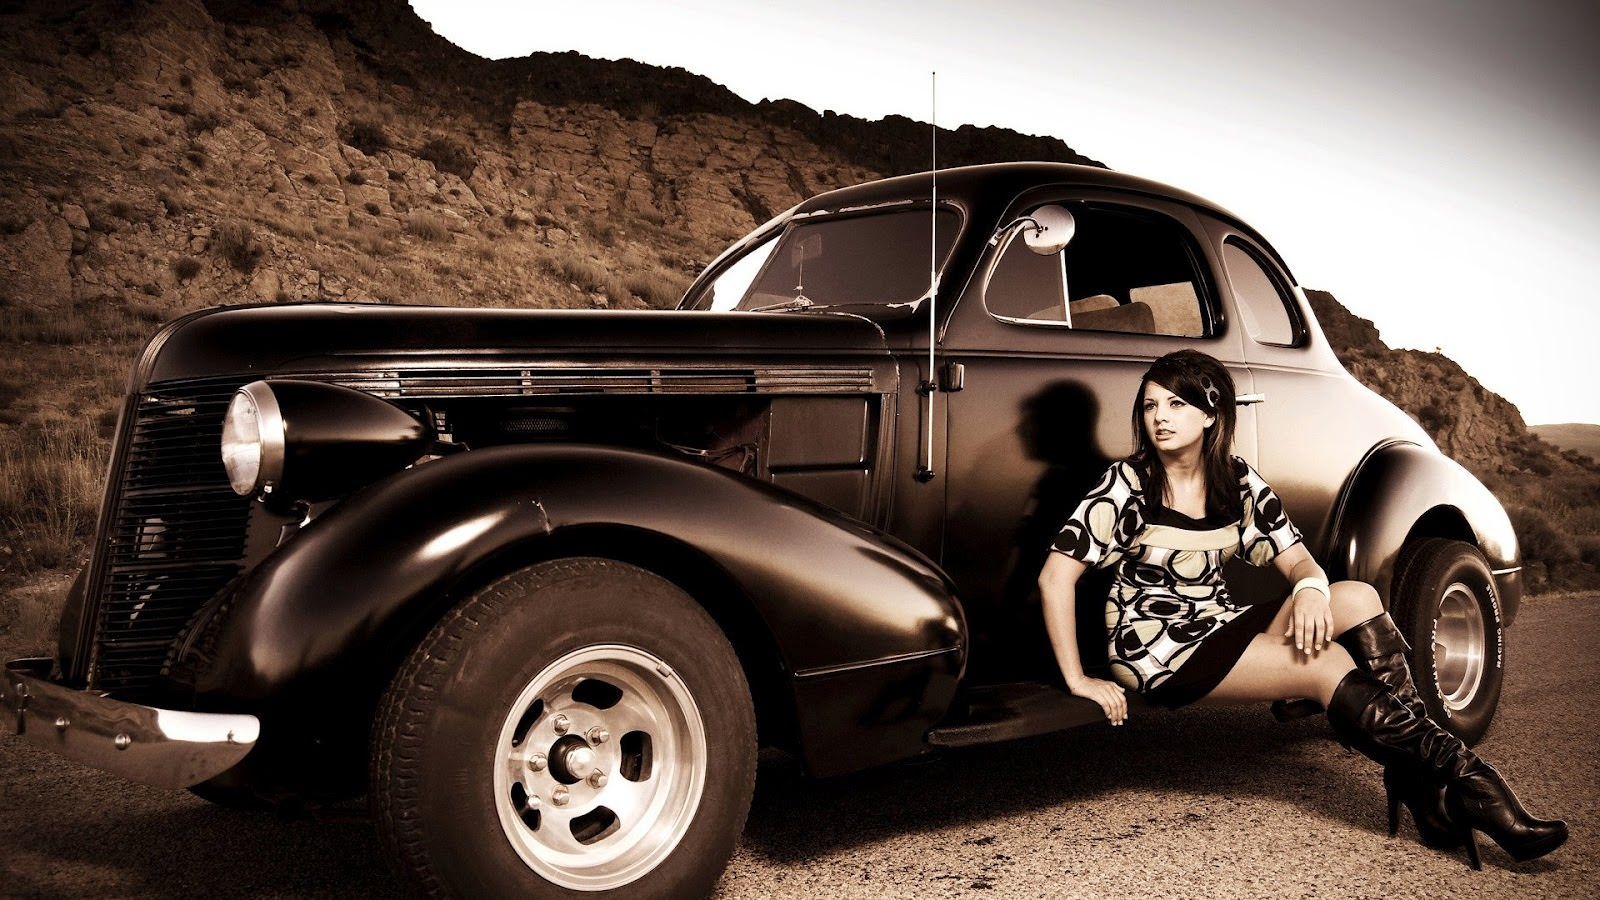 antique-vintage-car-and-girl-old-looking-photo-hd